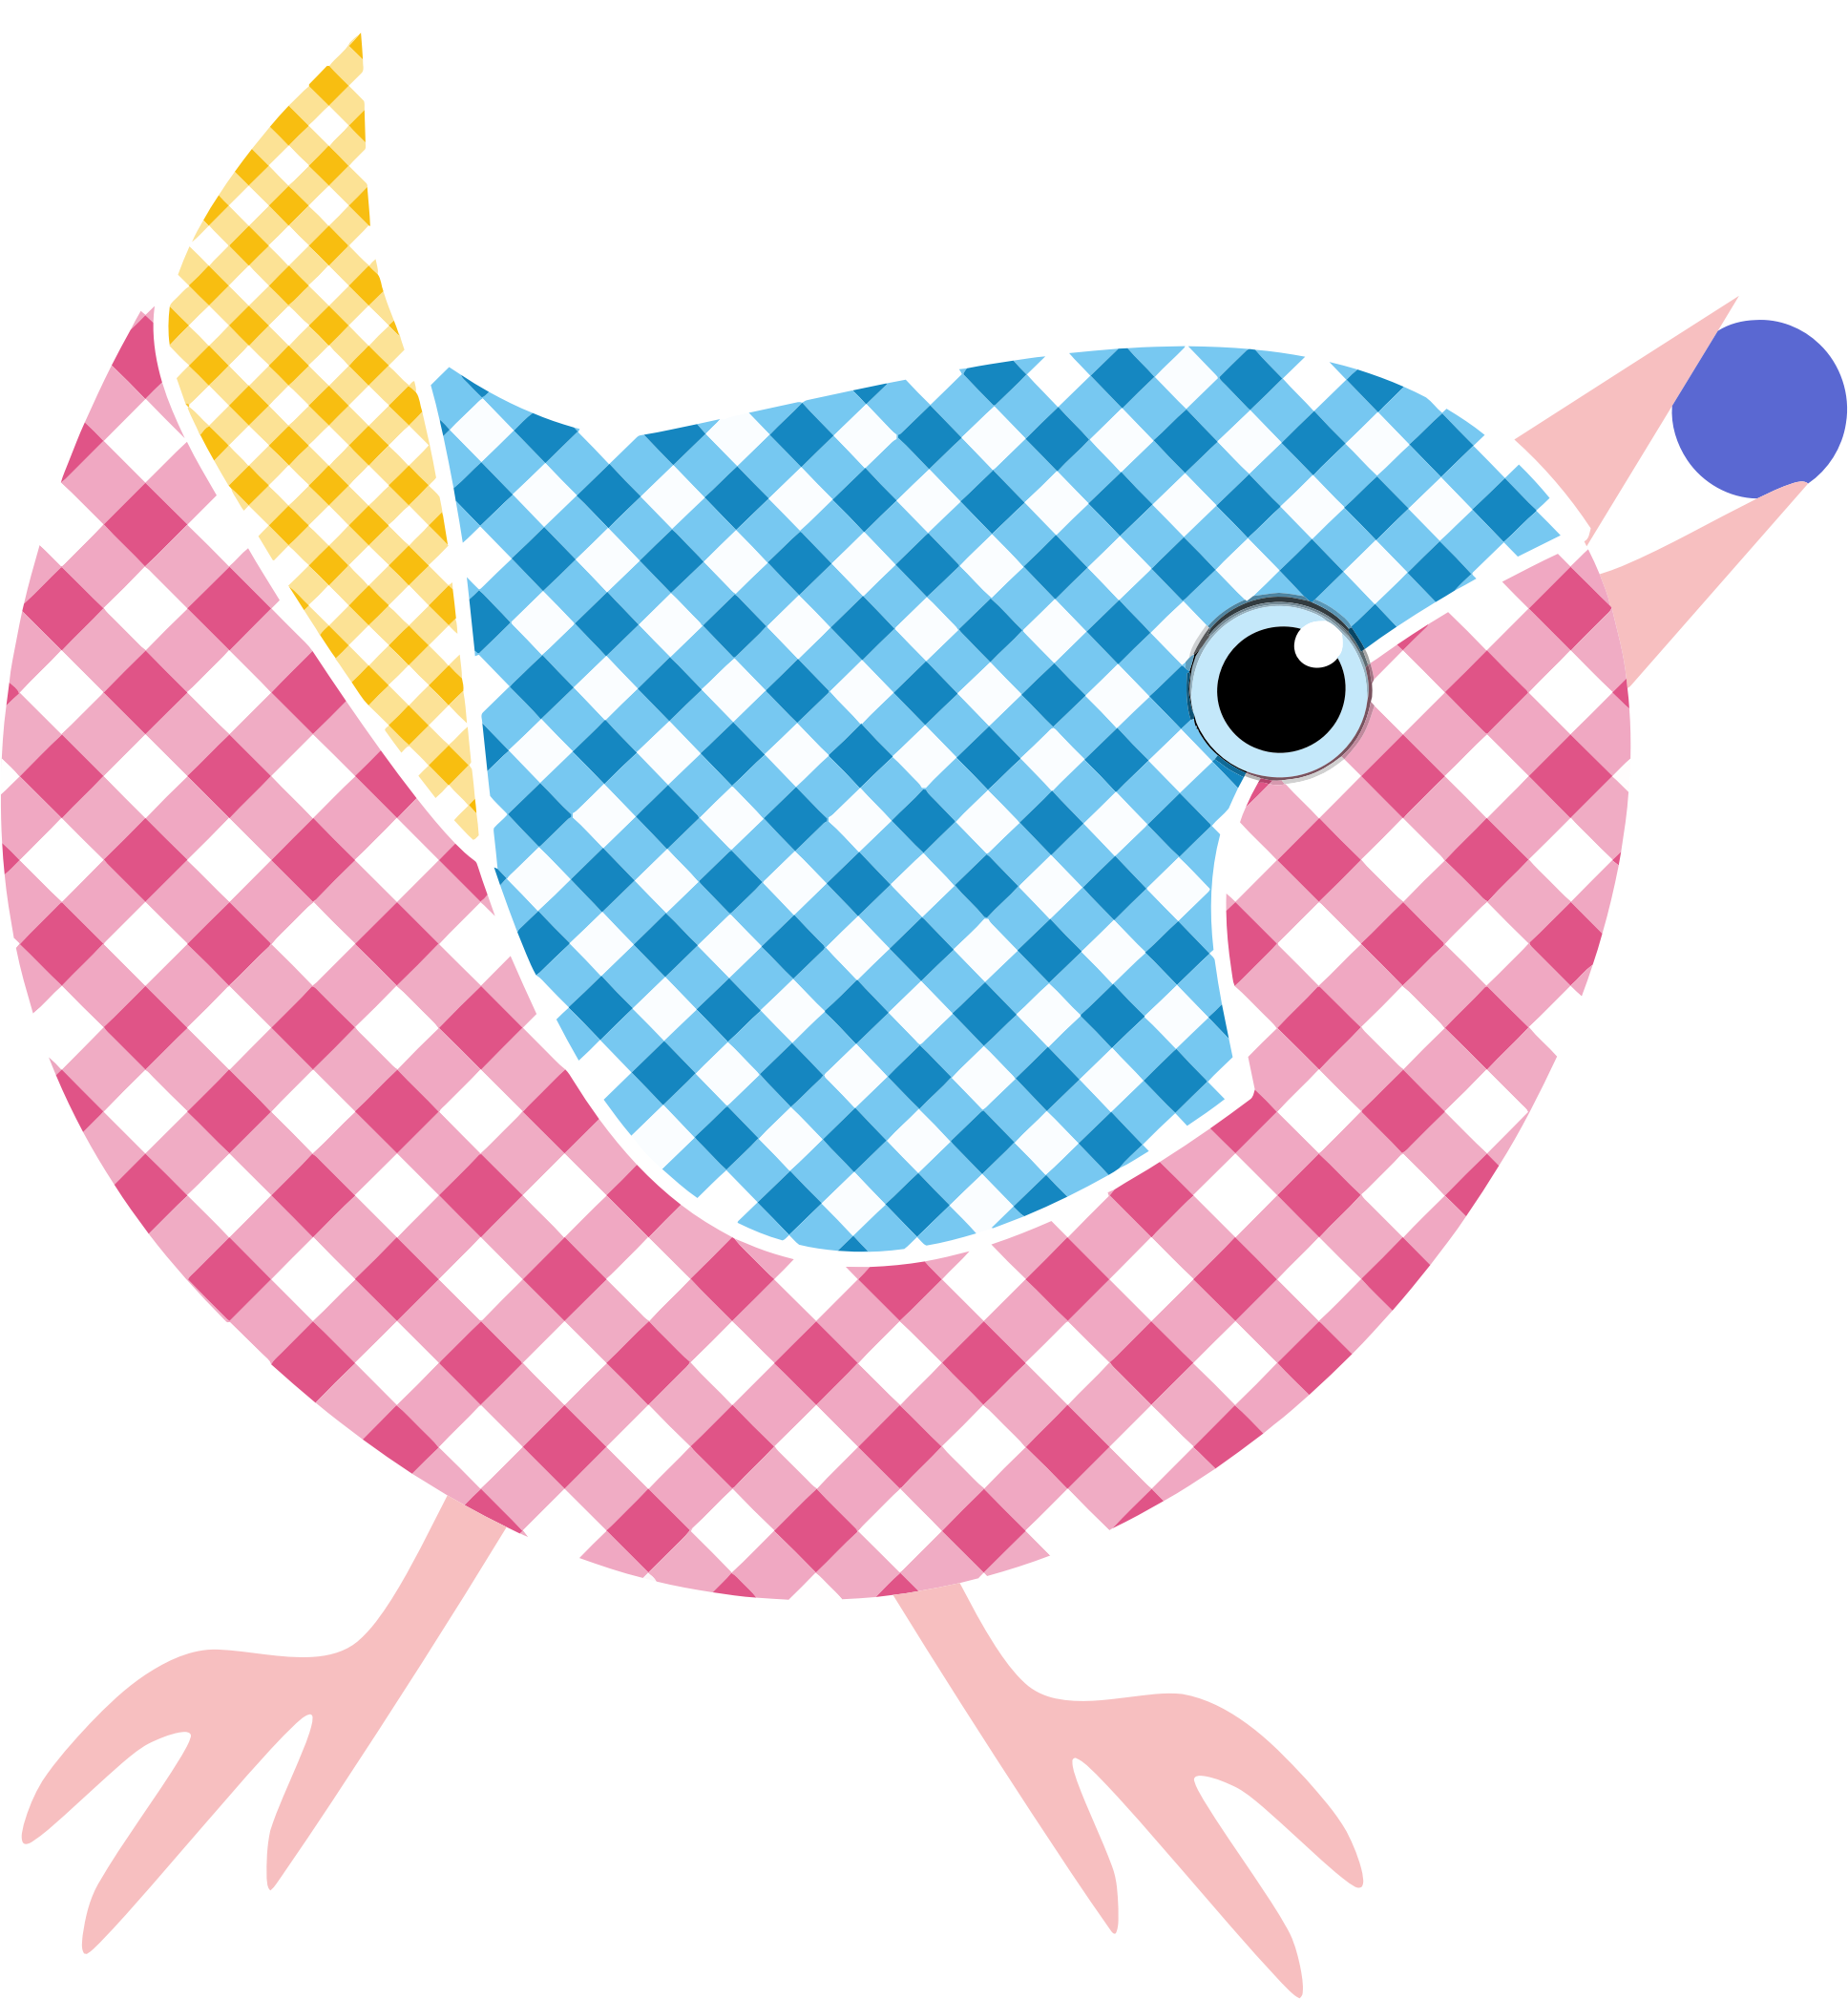 Checkered vector gingham. Bird icons png free